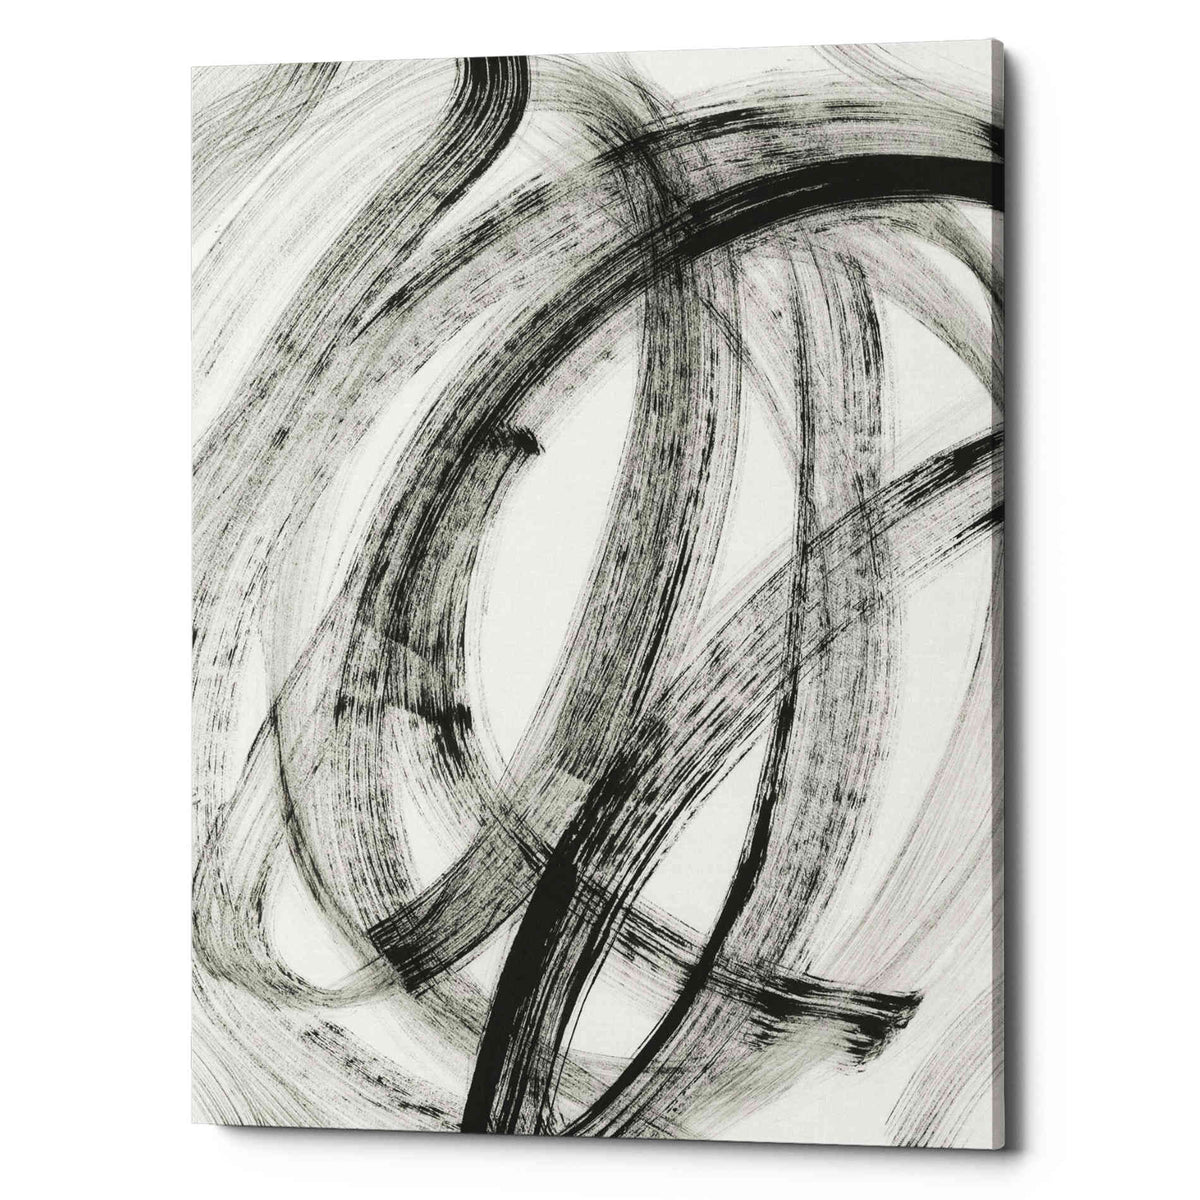 Epic Graffiti 'Going in Circles' Giclee Canvas Wall Art